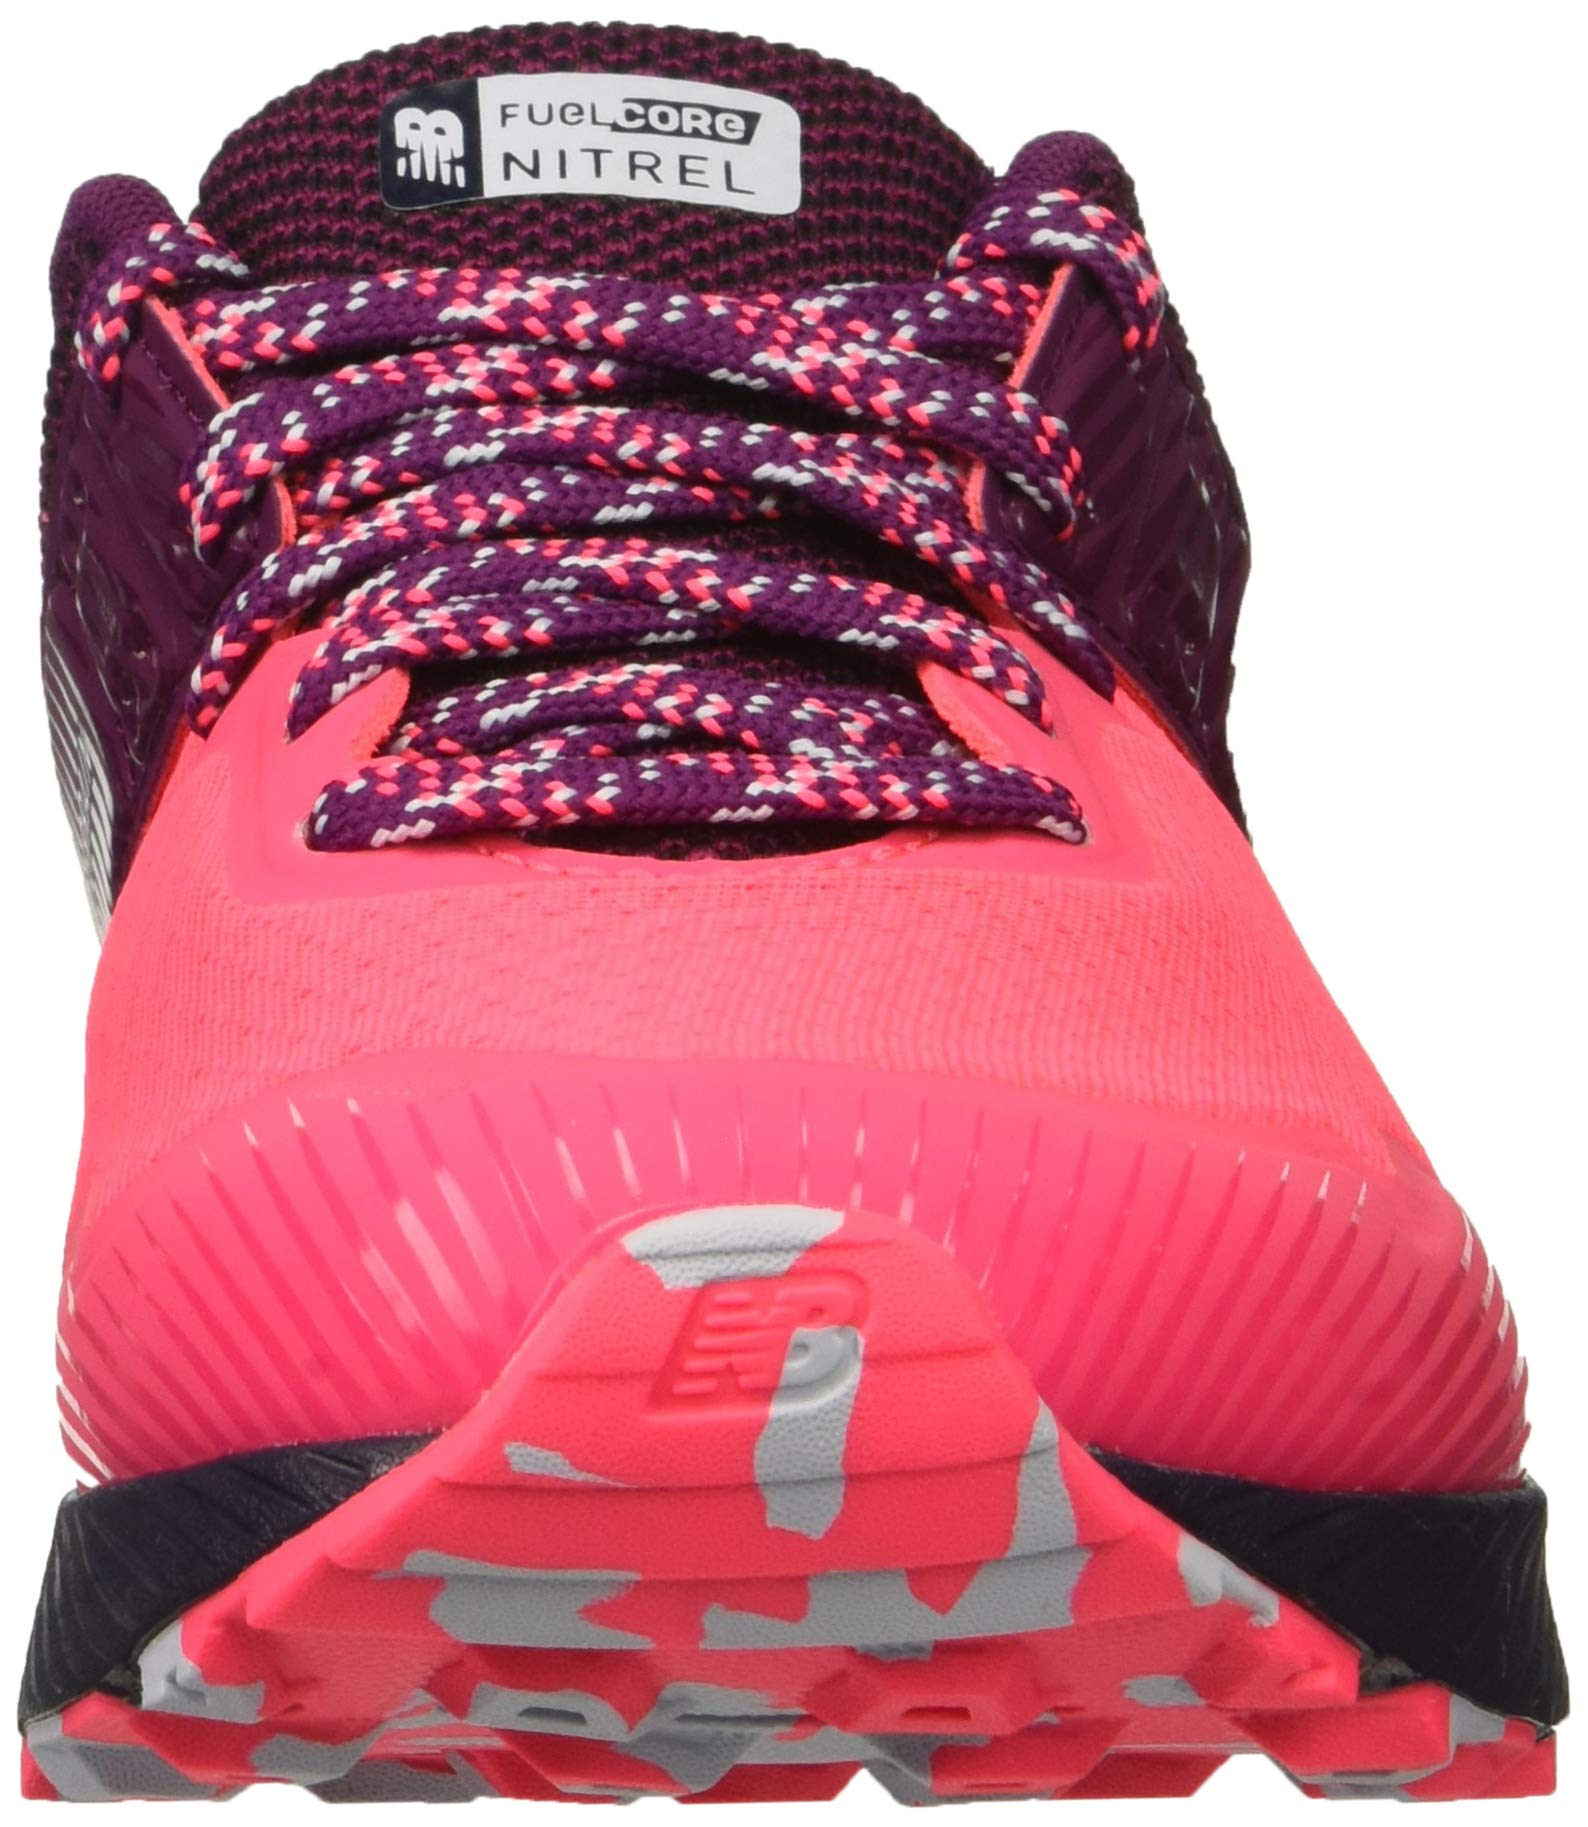 New Balance Women's Nitrel V2 FuelCore Trail Running Shoe Pink zing/Claret/Pigment 5 B US by New Balance (Image #4)